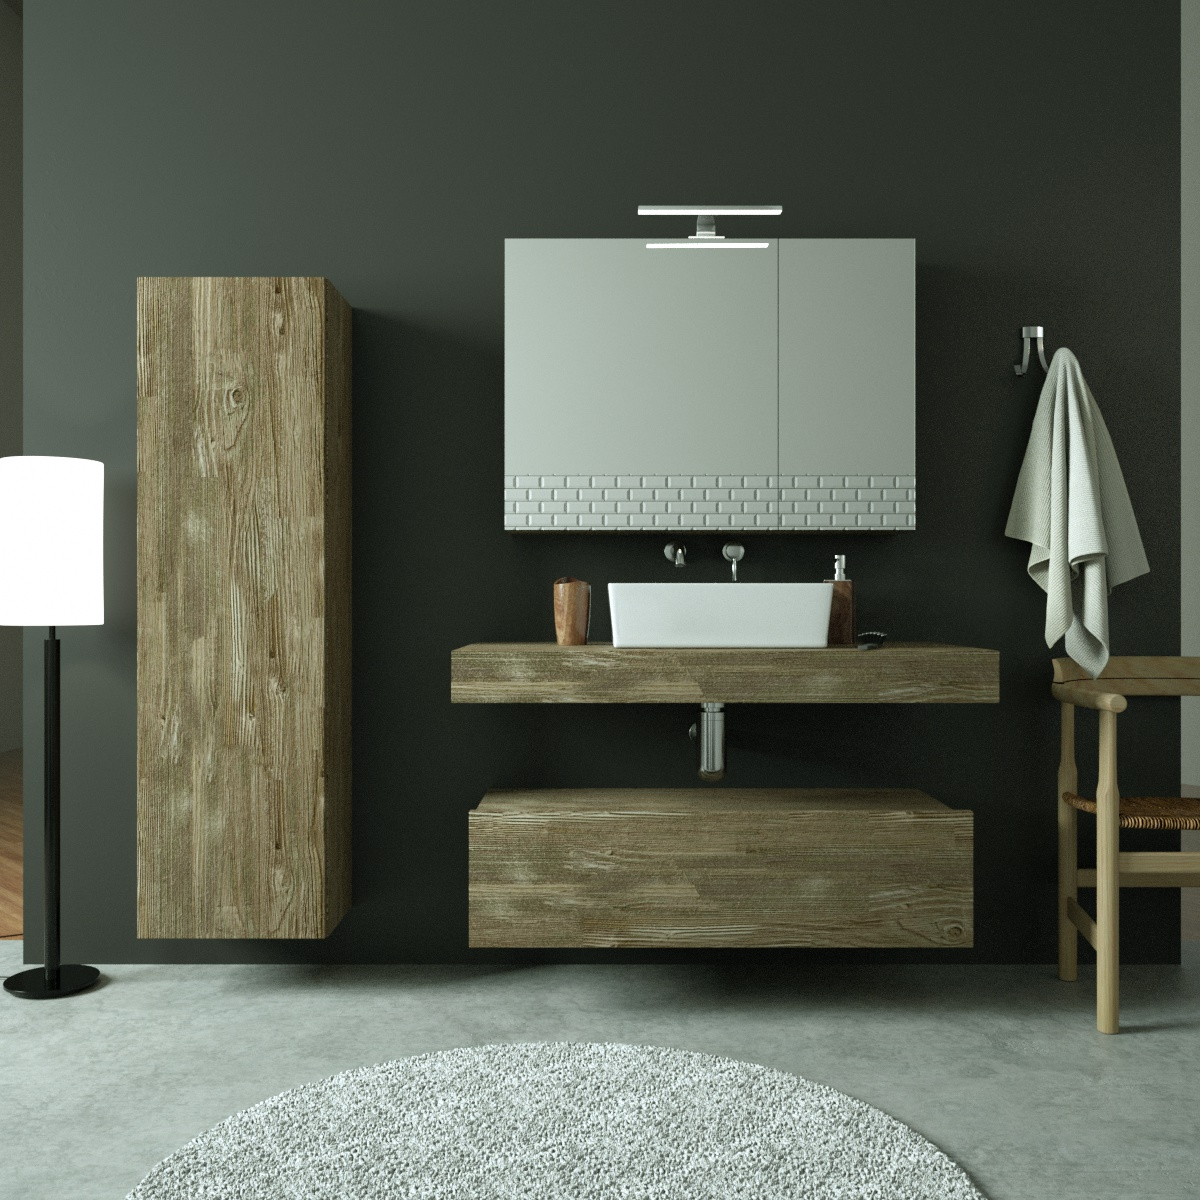 Render 3D Catalogo Mobile Bagno Finitura